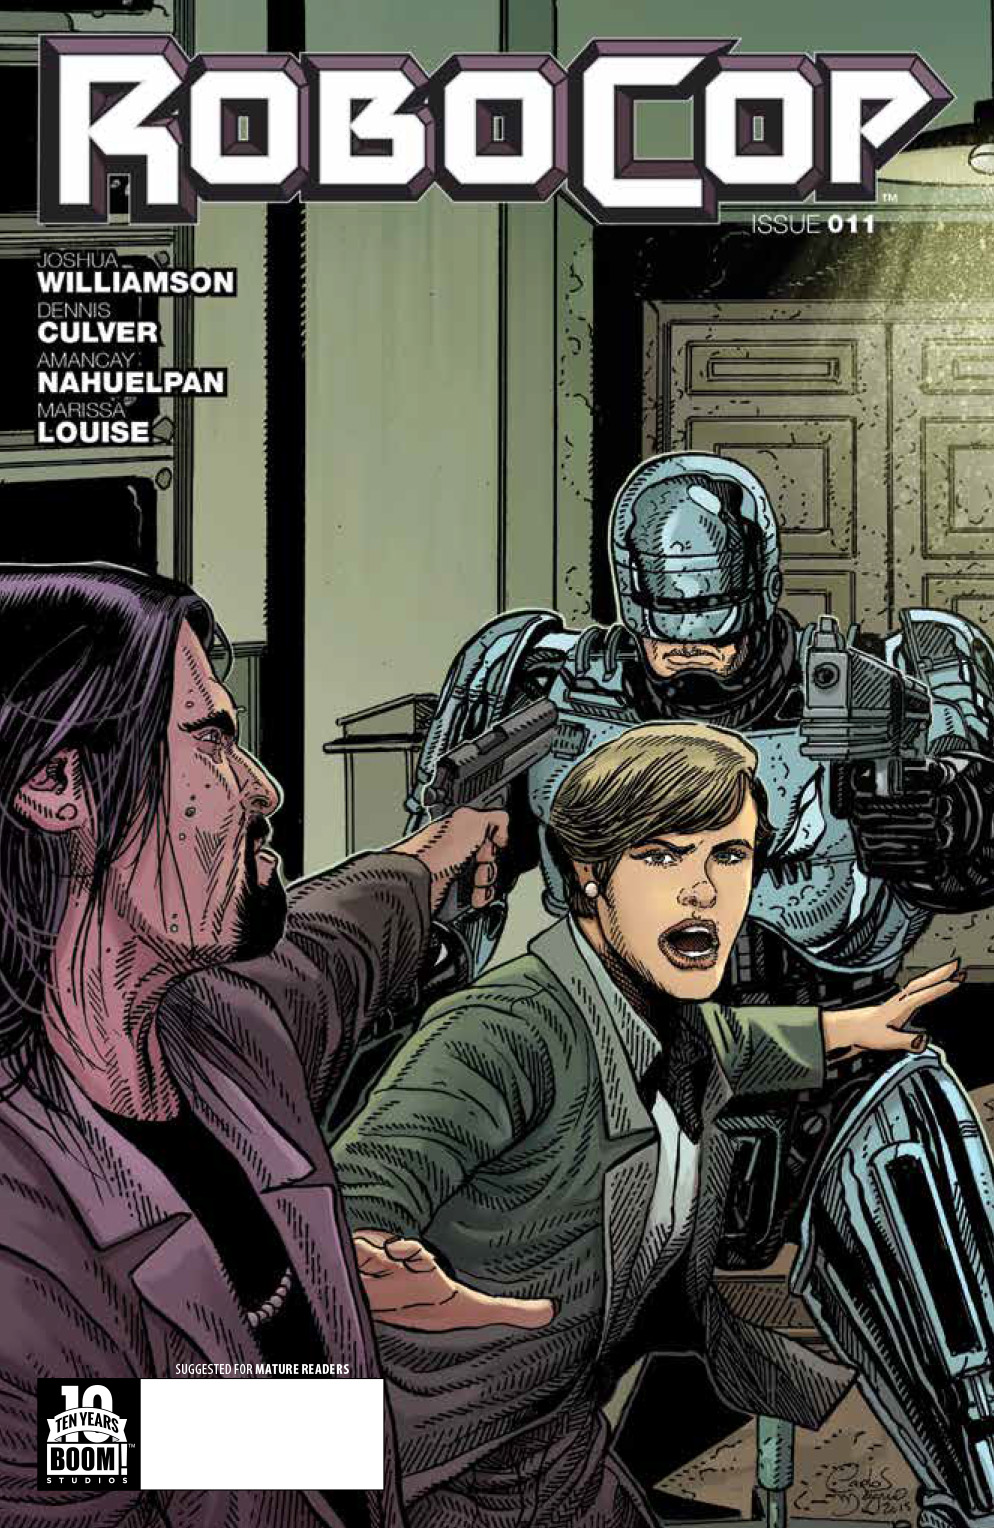 Robocop #11 Preview